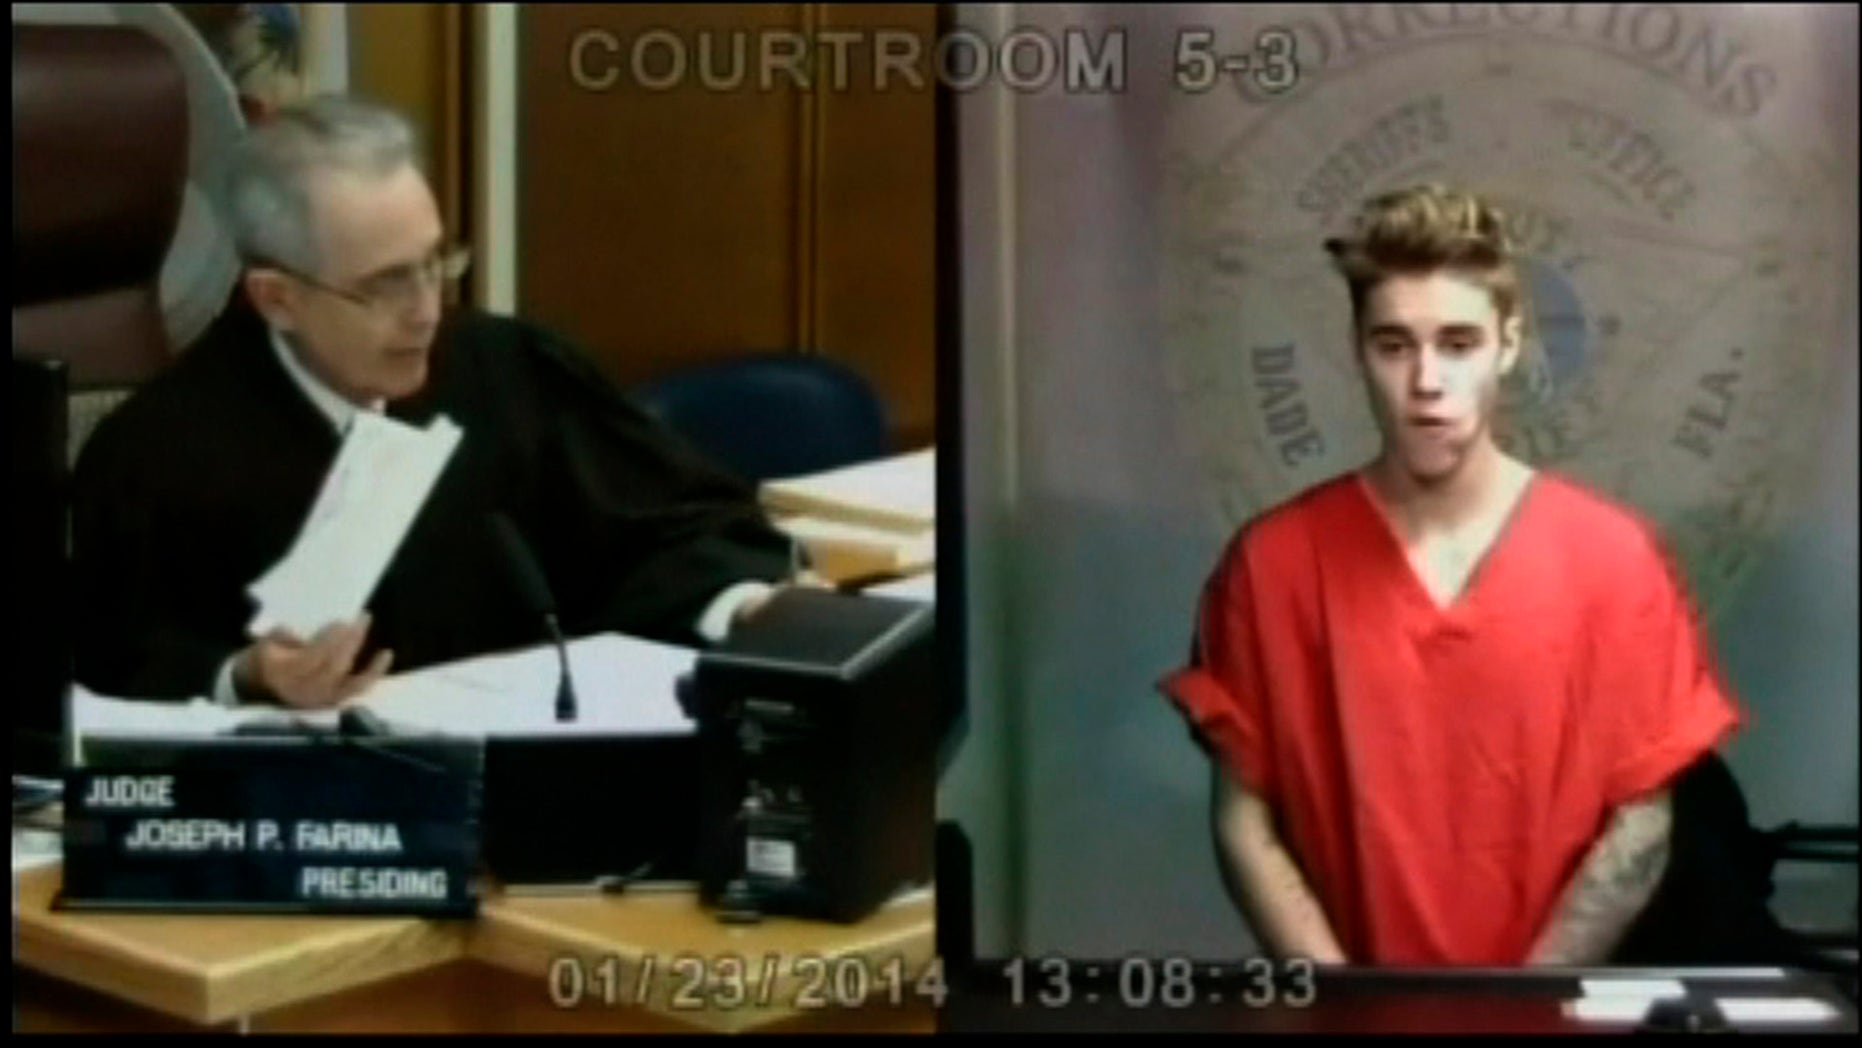 January 23, 2014. Pop singer Justin Bieber appears in front of Judge Joseph Farina by video link in this still image from video from Miami, Florida.